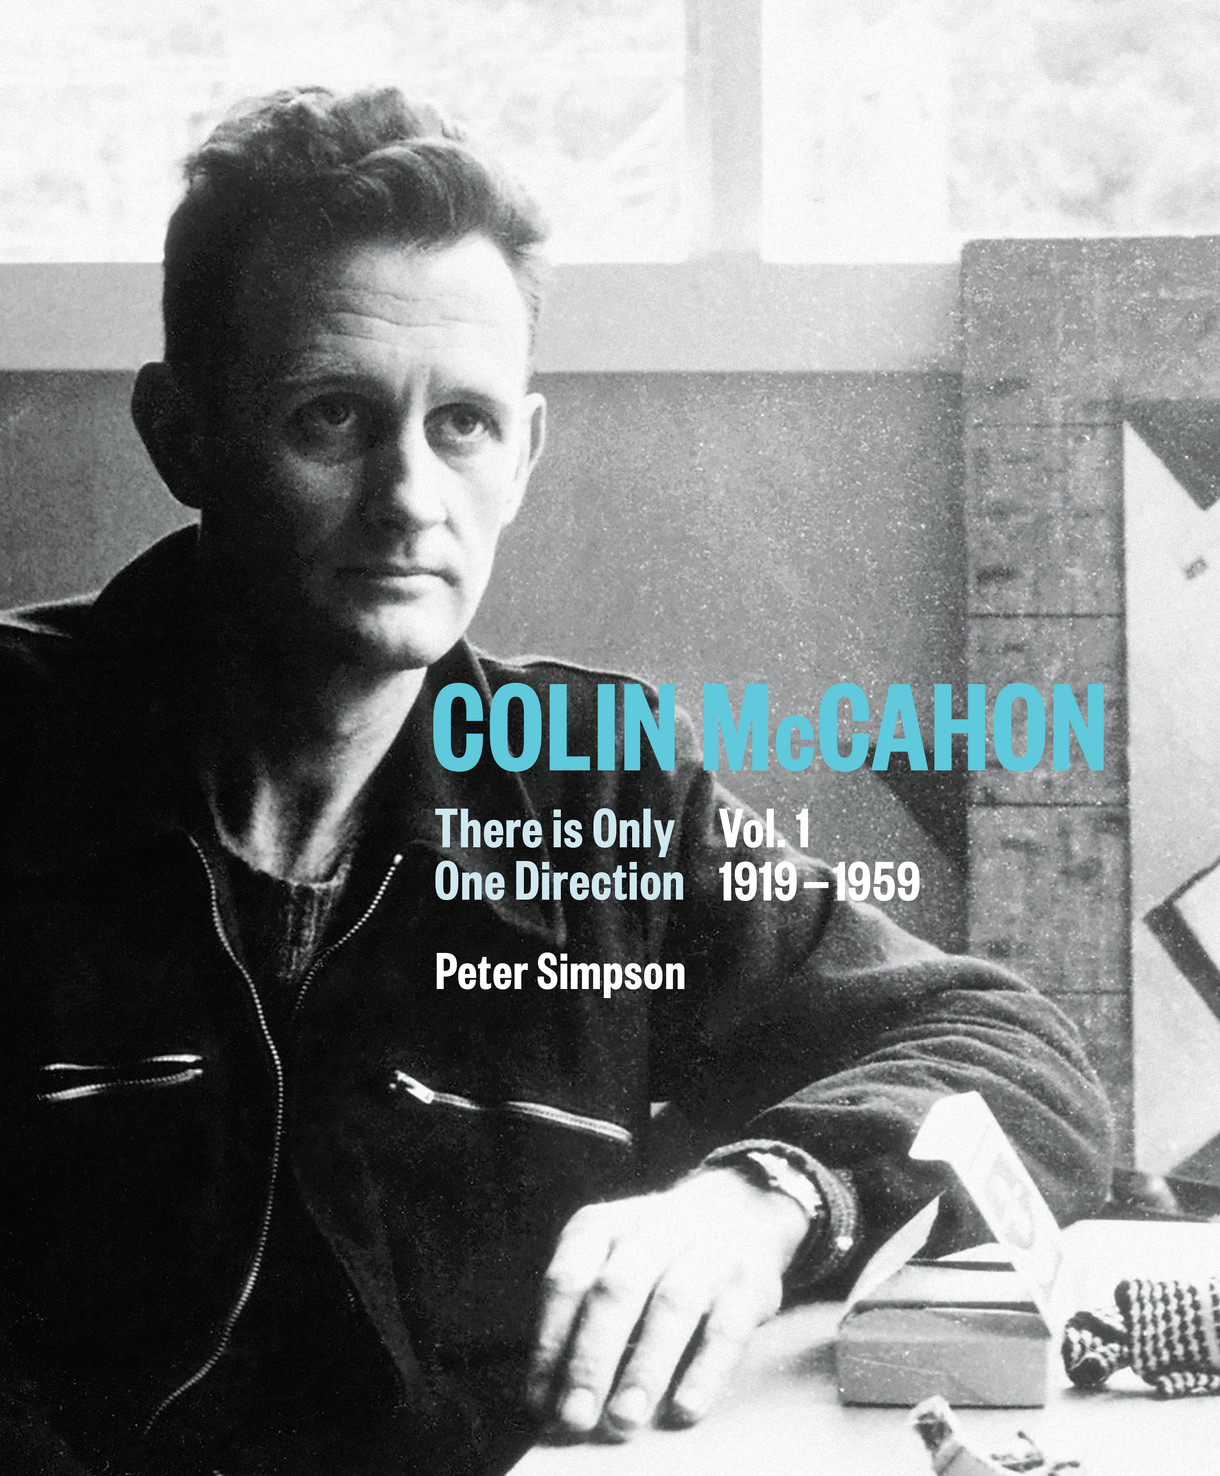 Colin McCahon: One Direction, Many Mansions